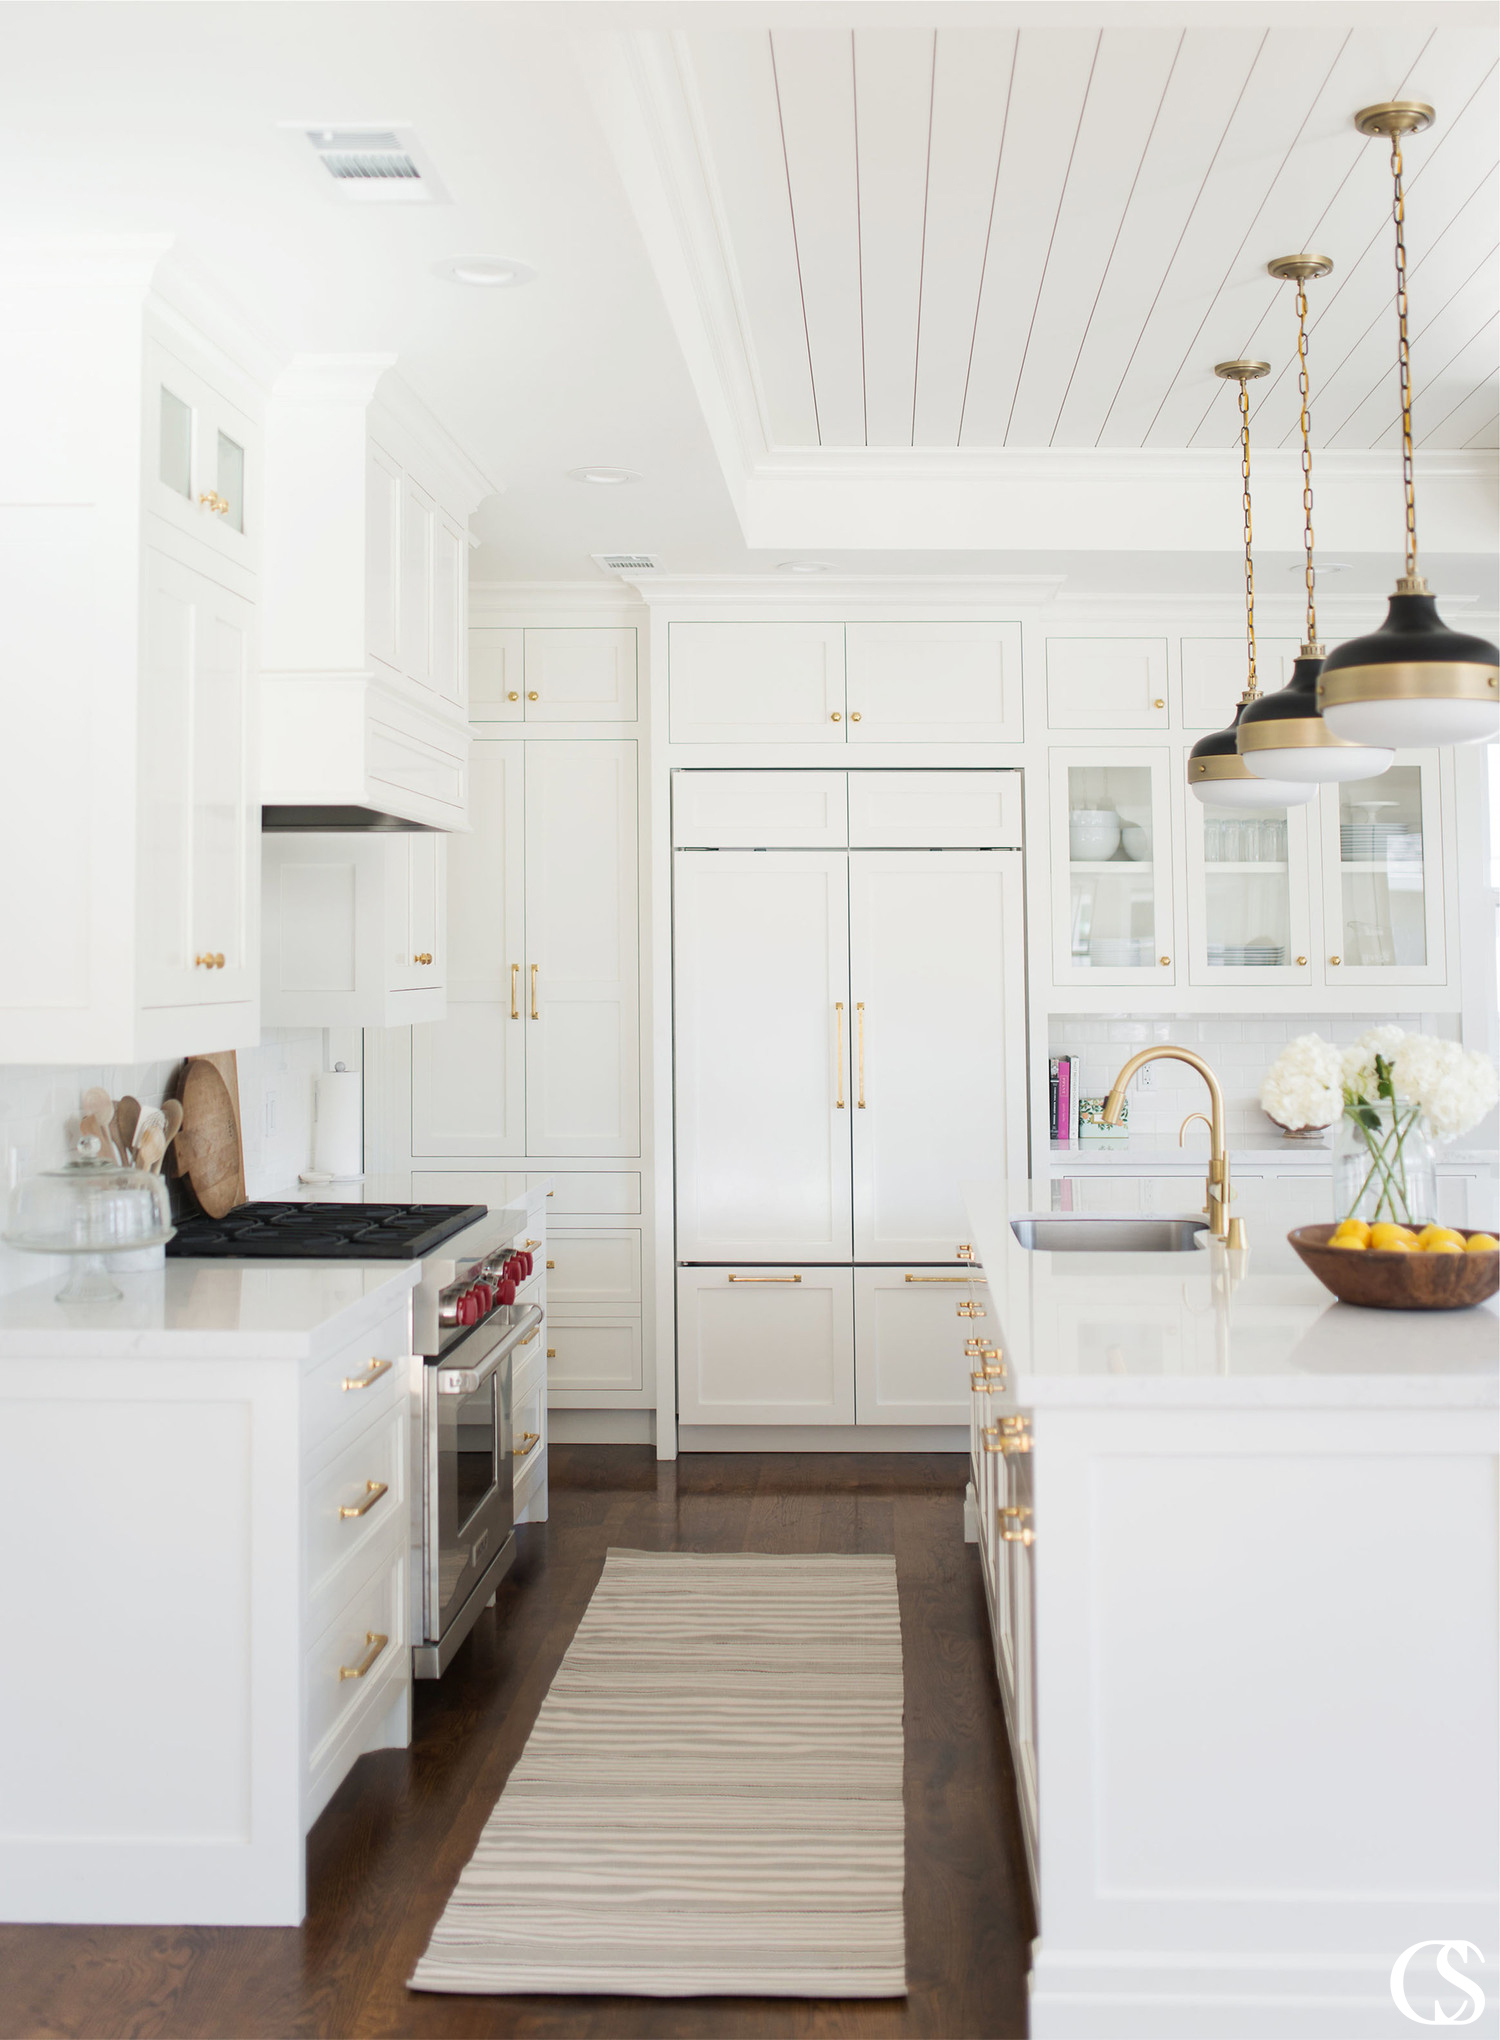 How do you make the best white kitchen cabinet design unique? One great way is to add hardware that pops but that visually leads your eye through the space to each beautiful piece of built-in cabinetry.